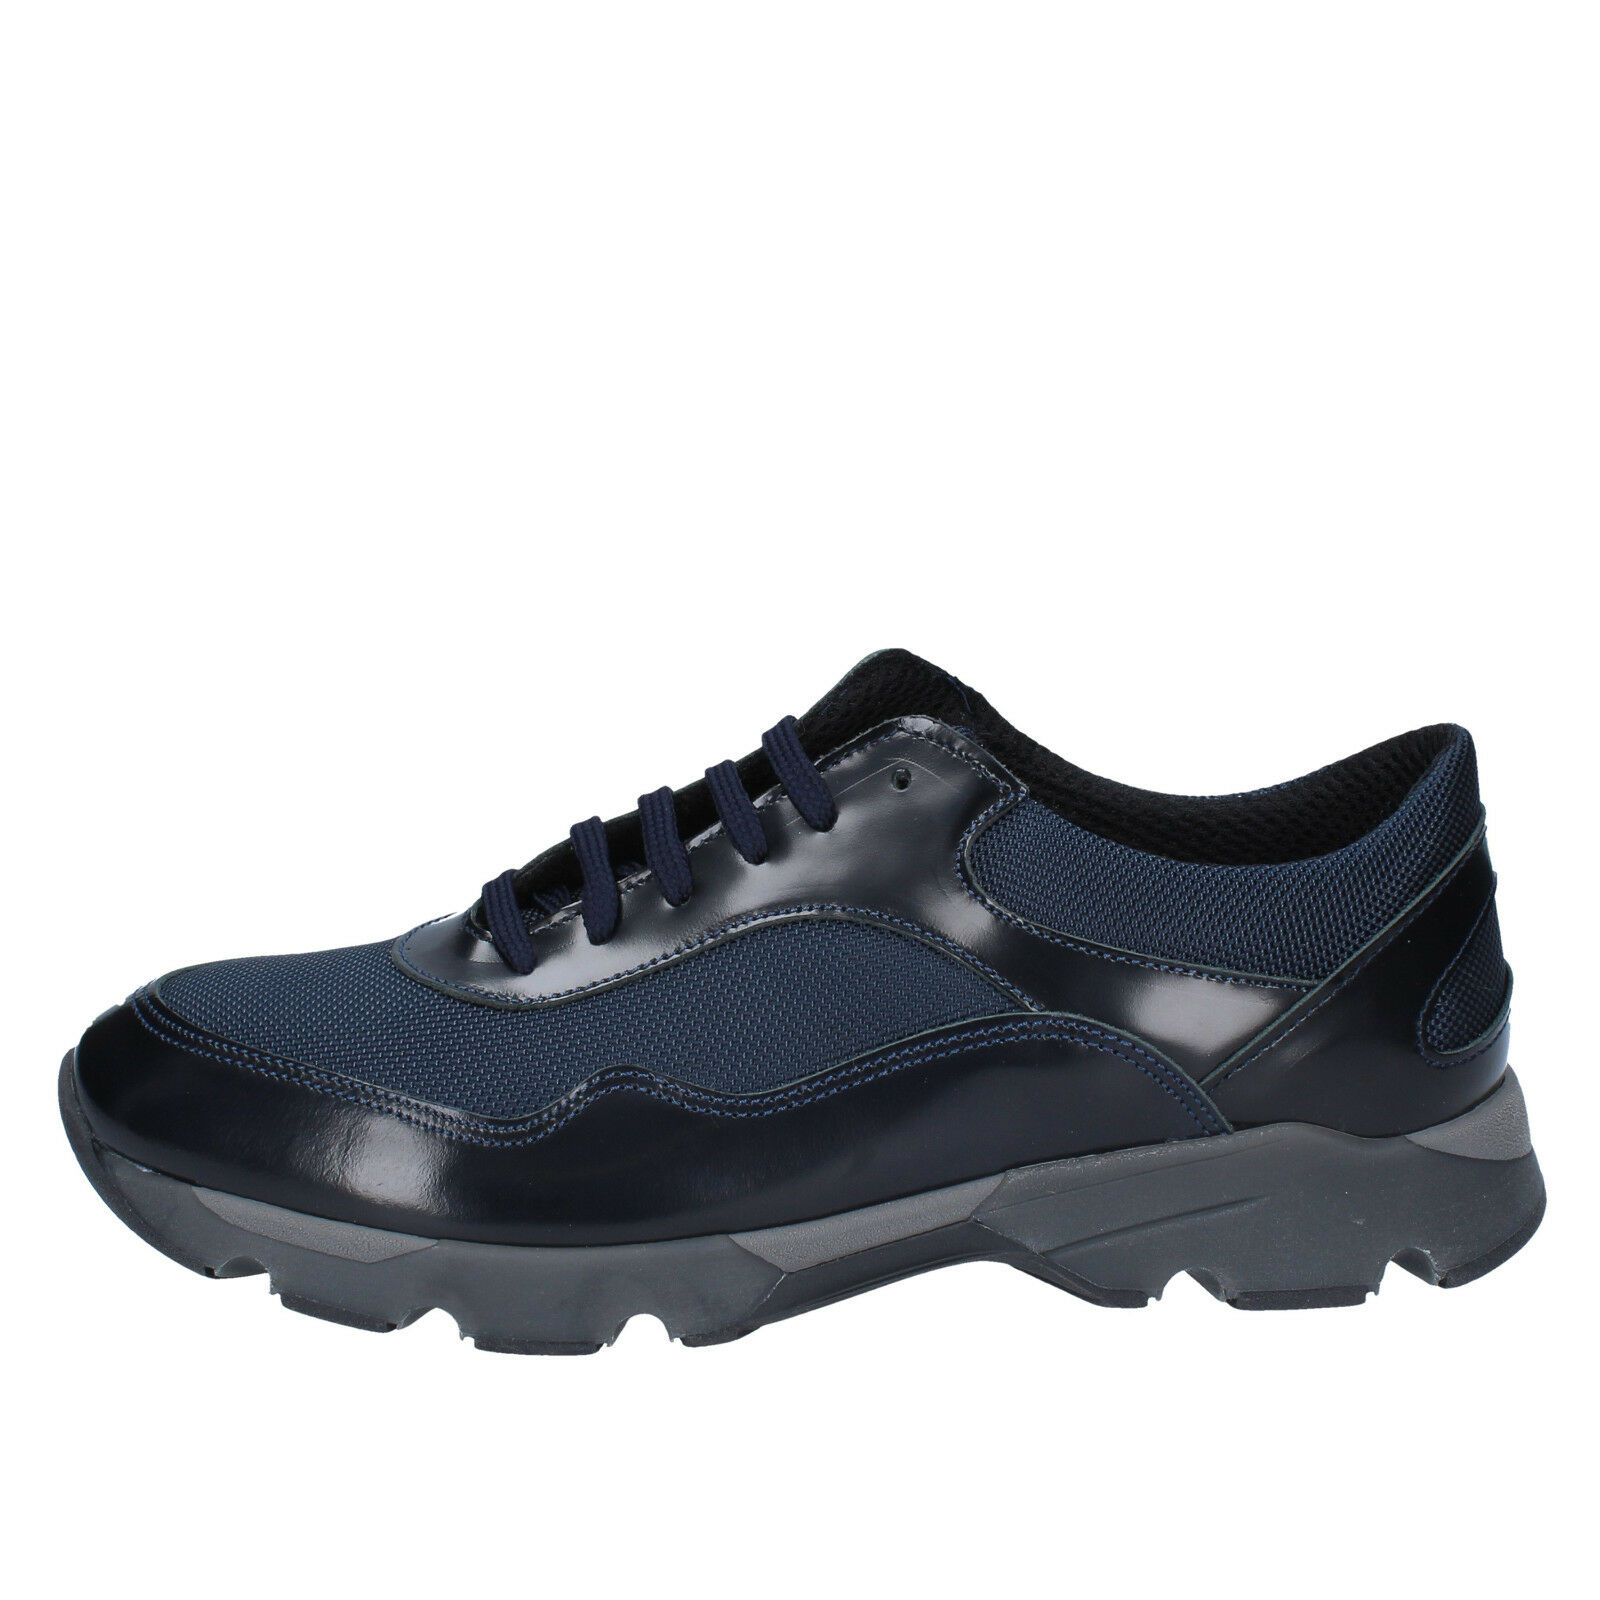 men's shoes BALDININI 9 () sneakers blue leather textile BY538-42